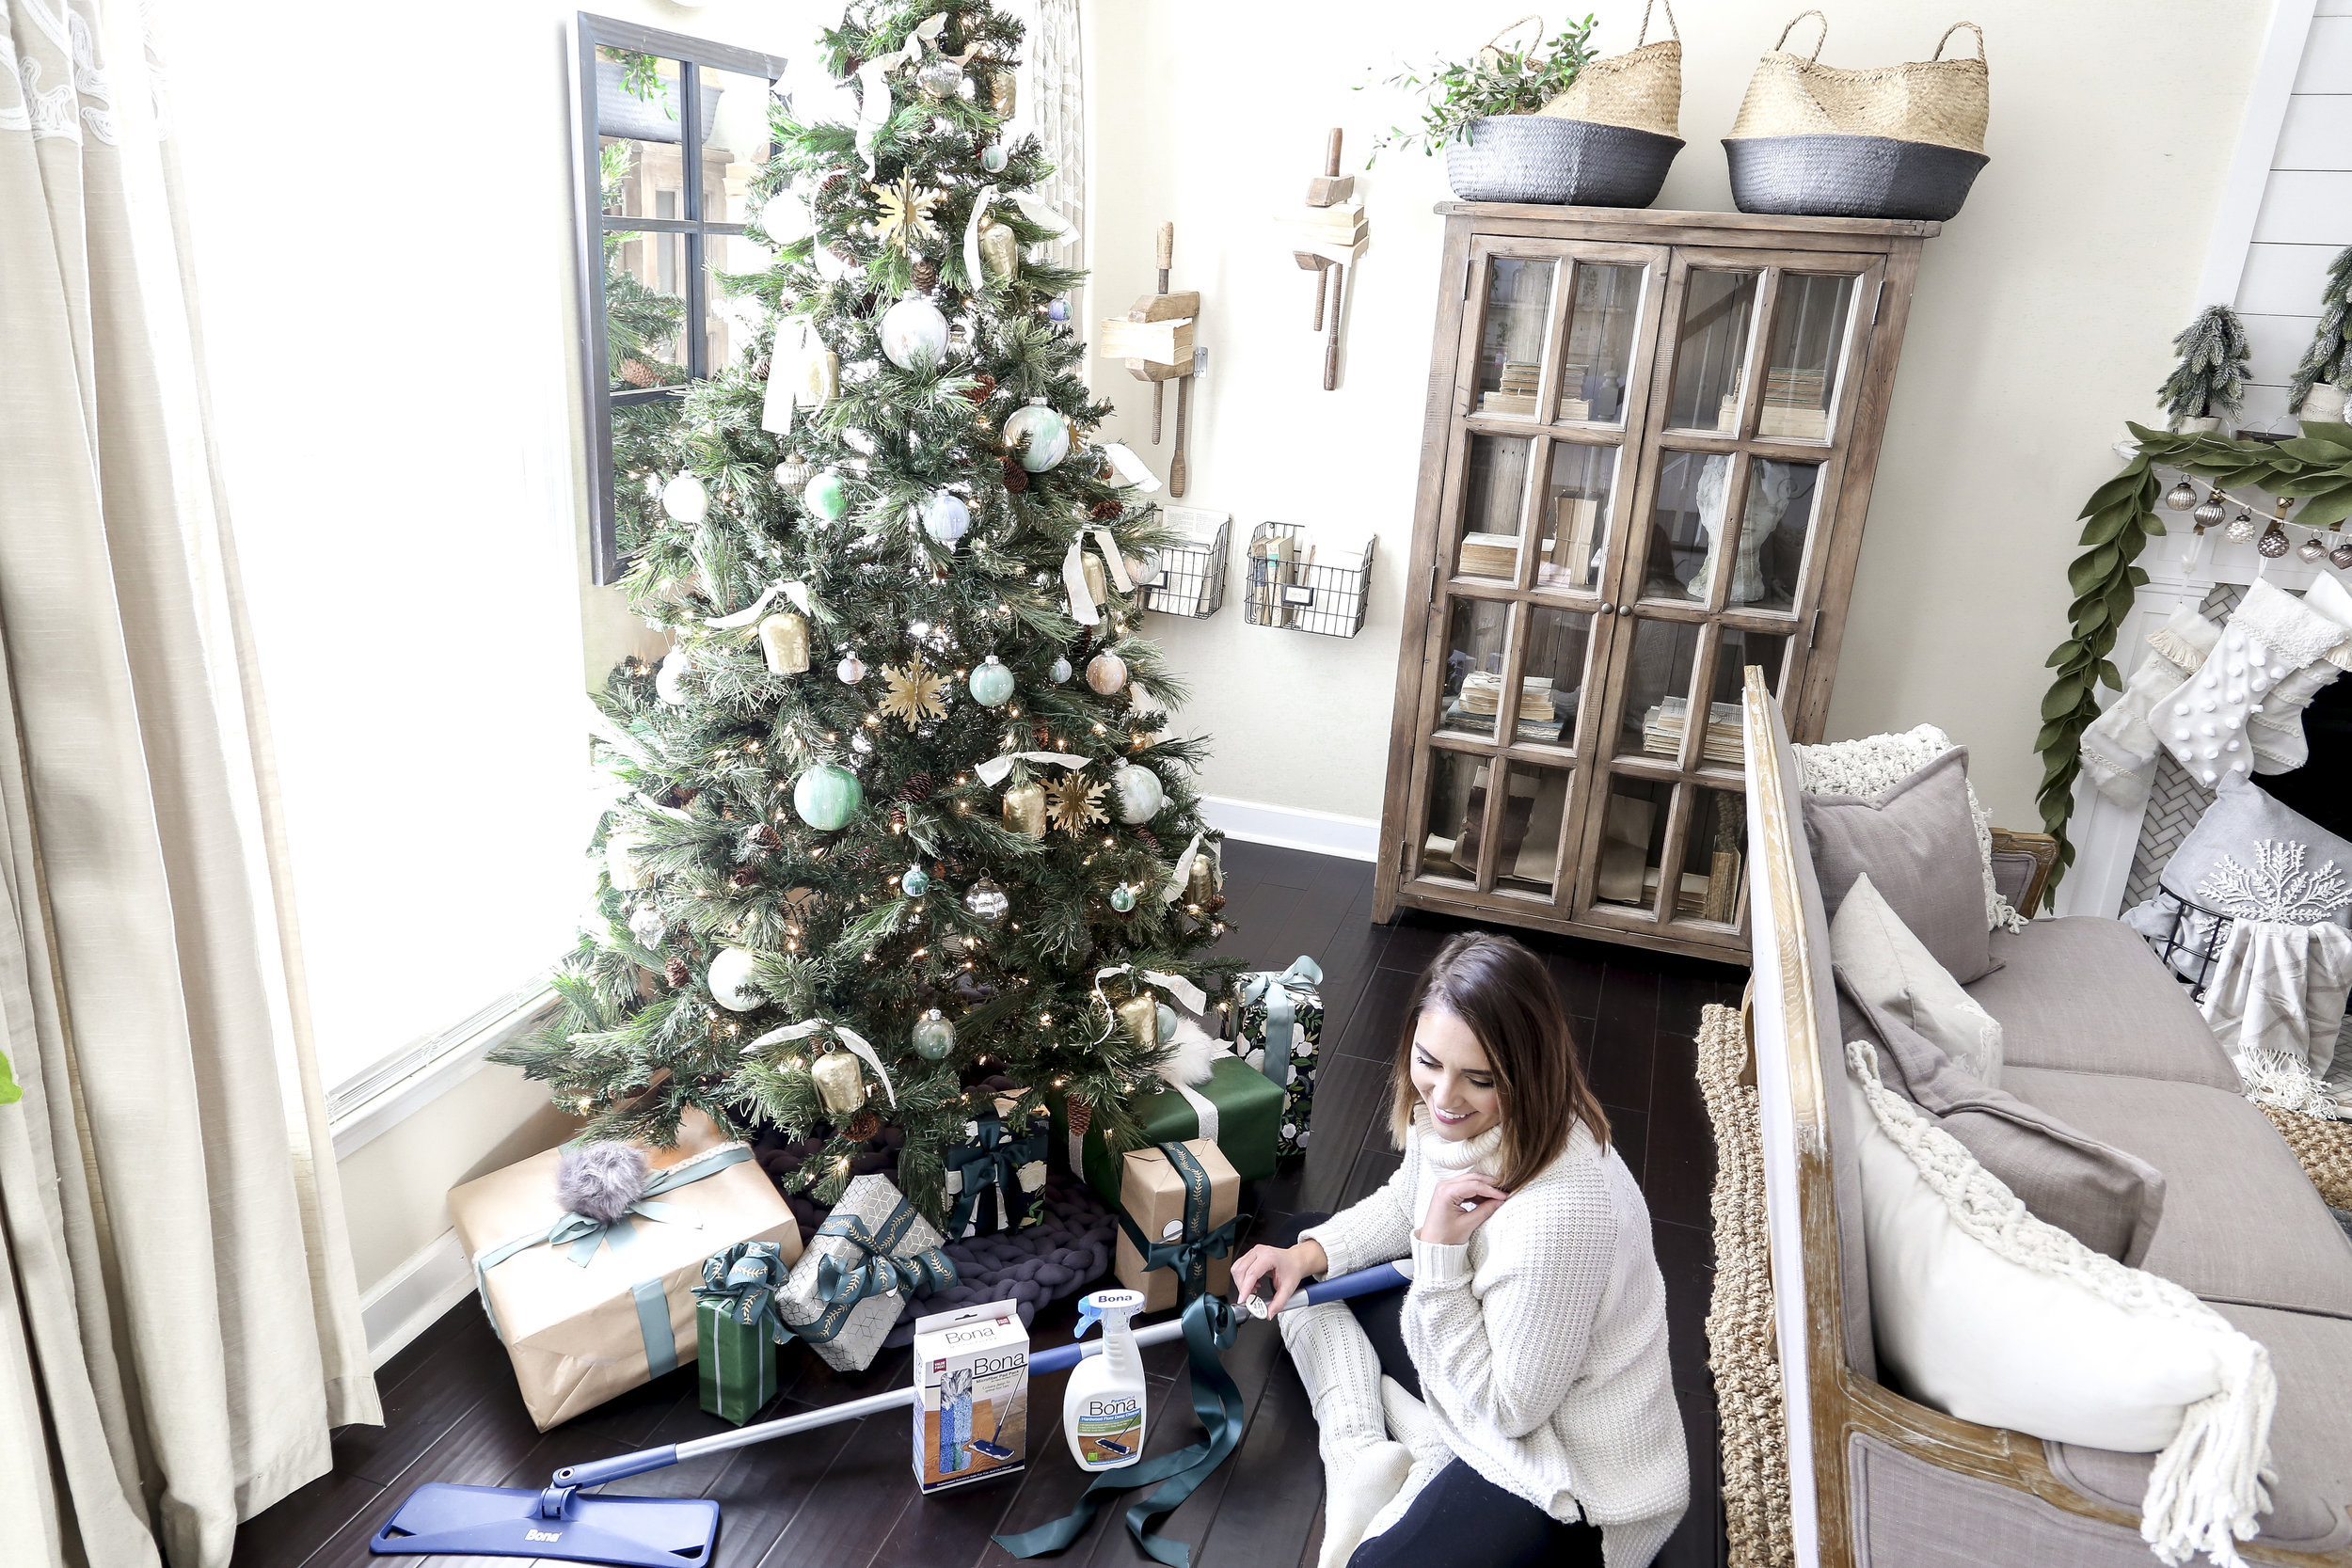 Tips for making your home ready for guest: Let your holidays sparkle with beautiful, wow worthy hardwood floors. Focus on spending less time cleaning and more time with family by using Bona's most powerful cleaning system yet!